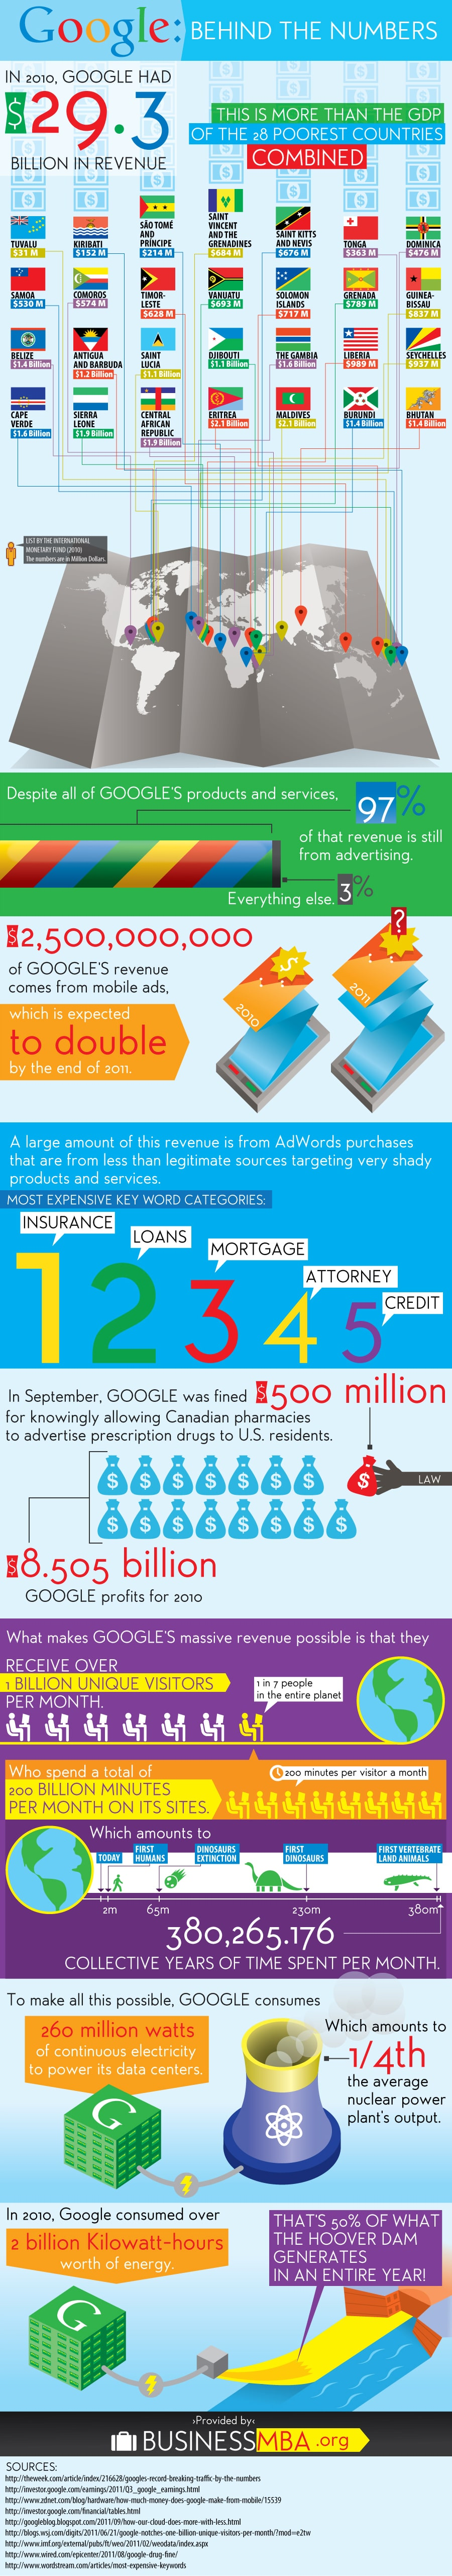 Google: The Ultimate Numbers Bomb [Infographic]